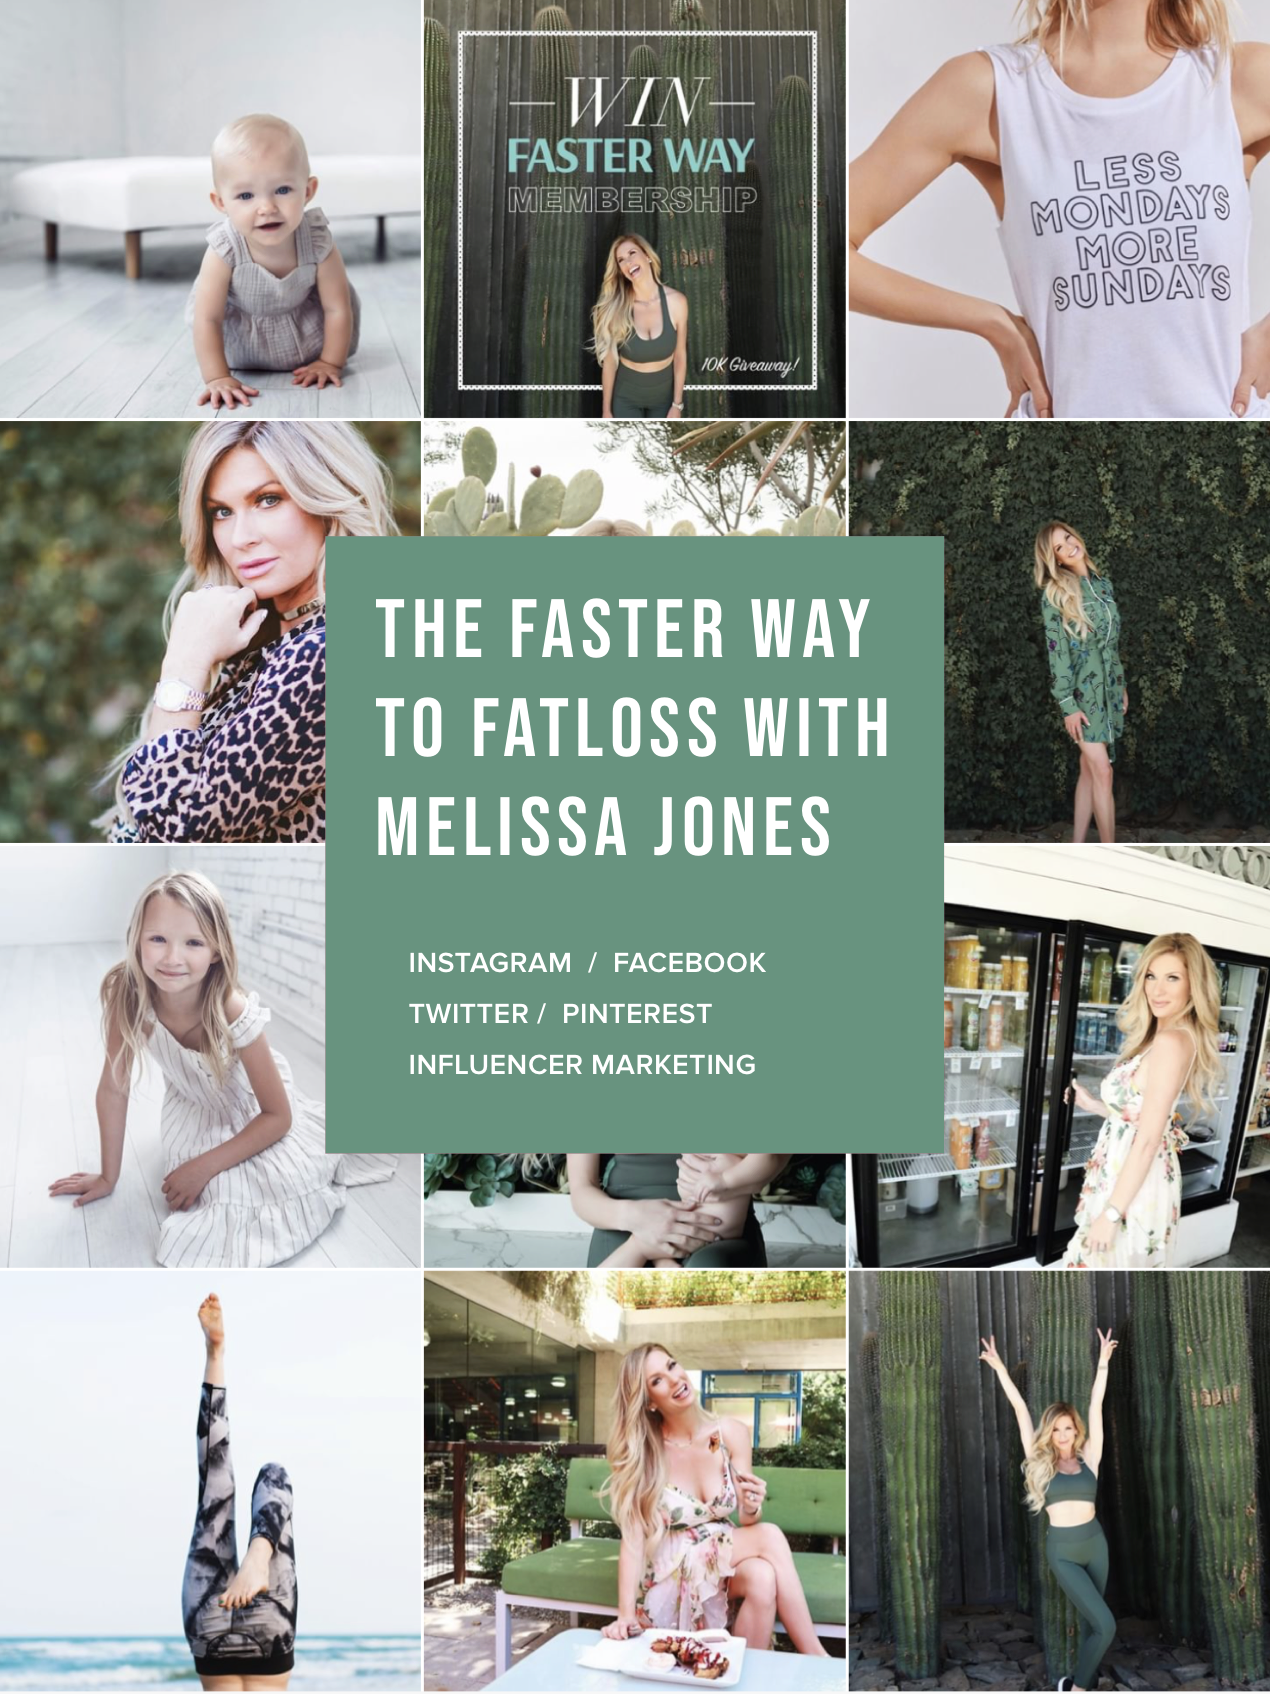 The FASTer Way to Fat Loss with Melissa Jones - Instagram: @meliss.jonesTwitter: @meliss_jonesFacebook: FWTFL with MelissaPinterest: Melissa Jones